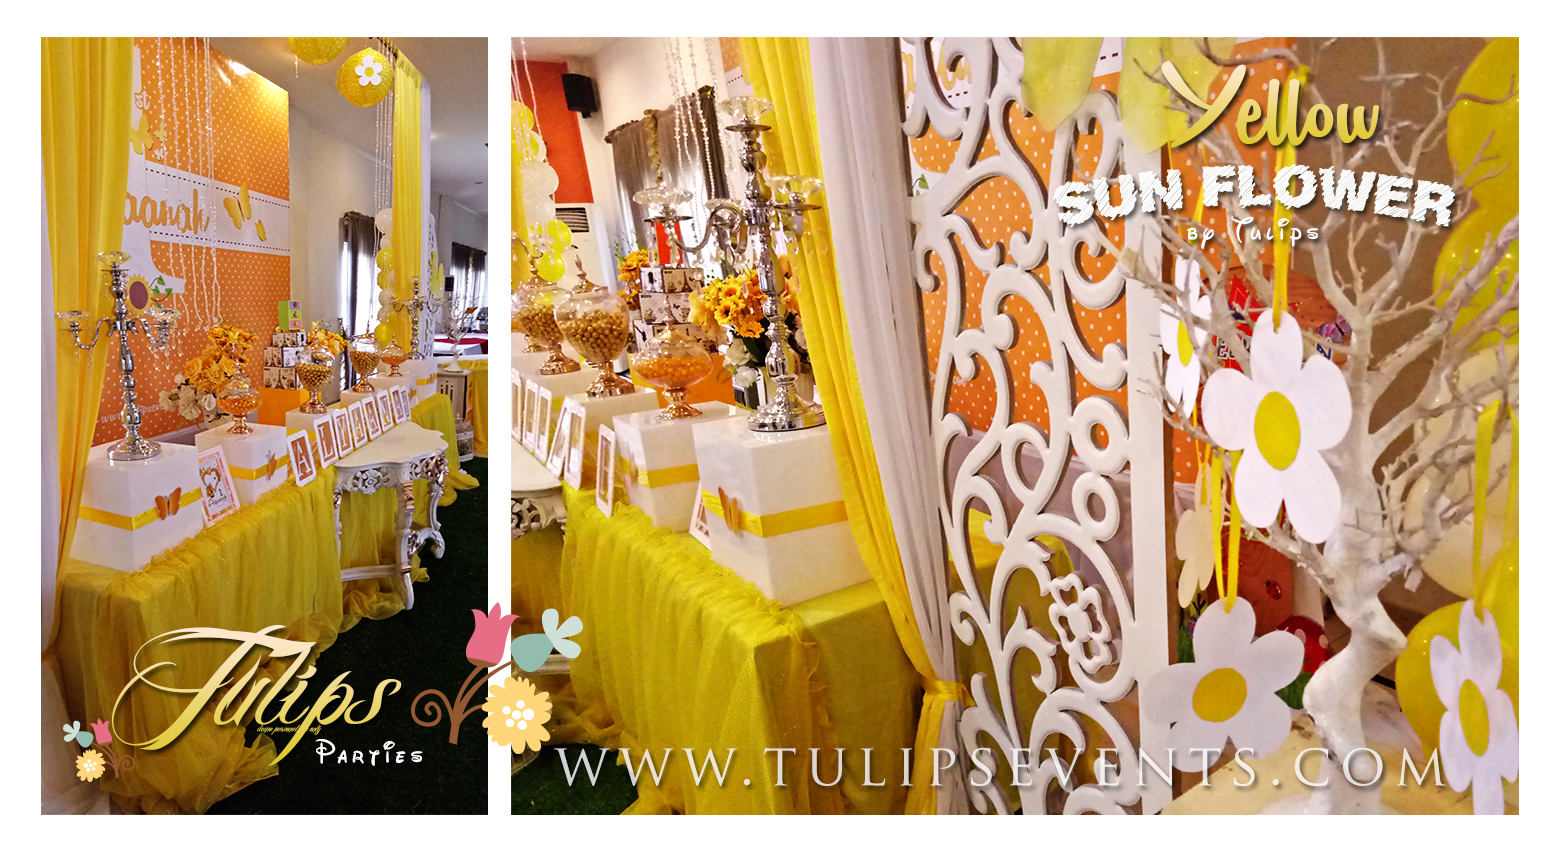 Yellow sunflower birthday party theme ideas in Pakistan